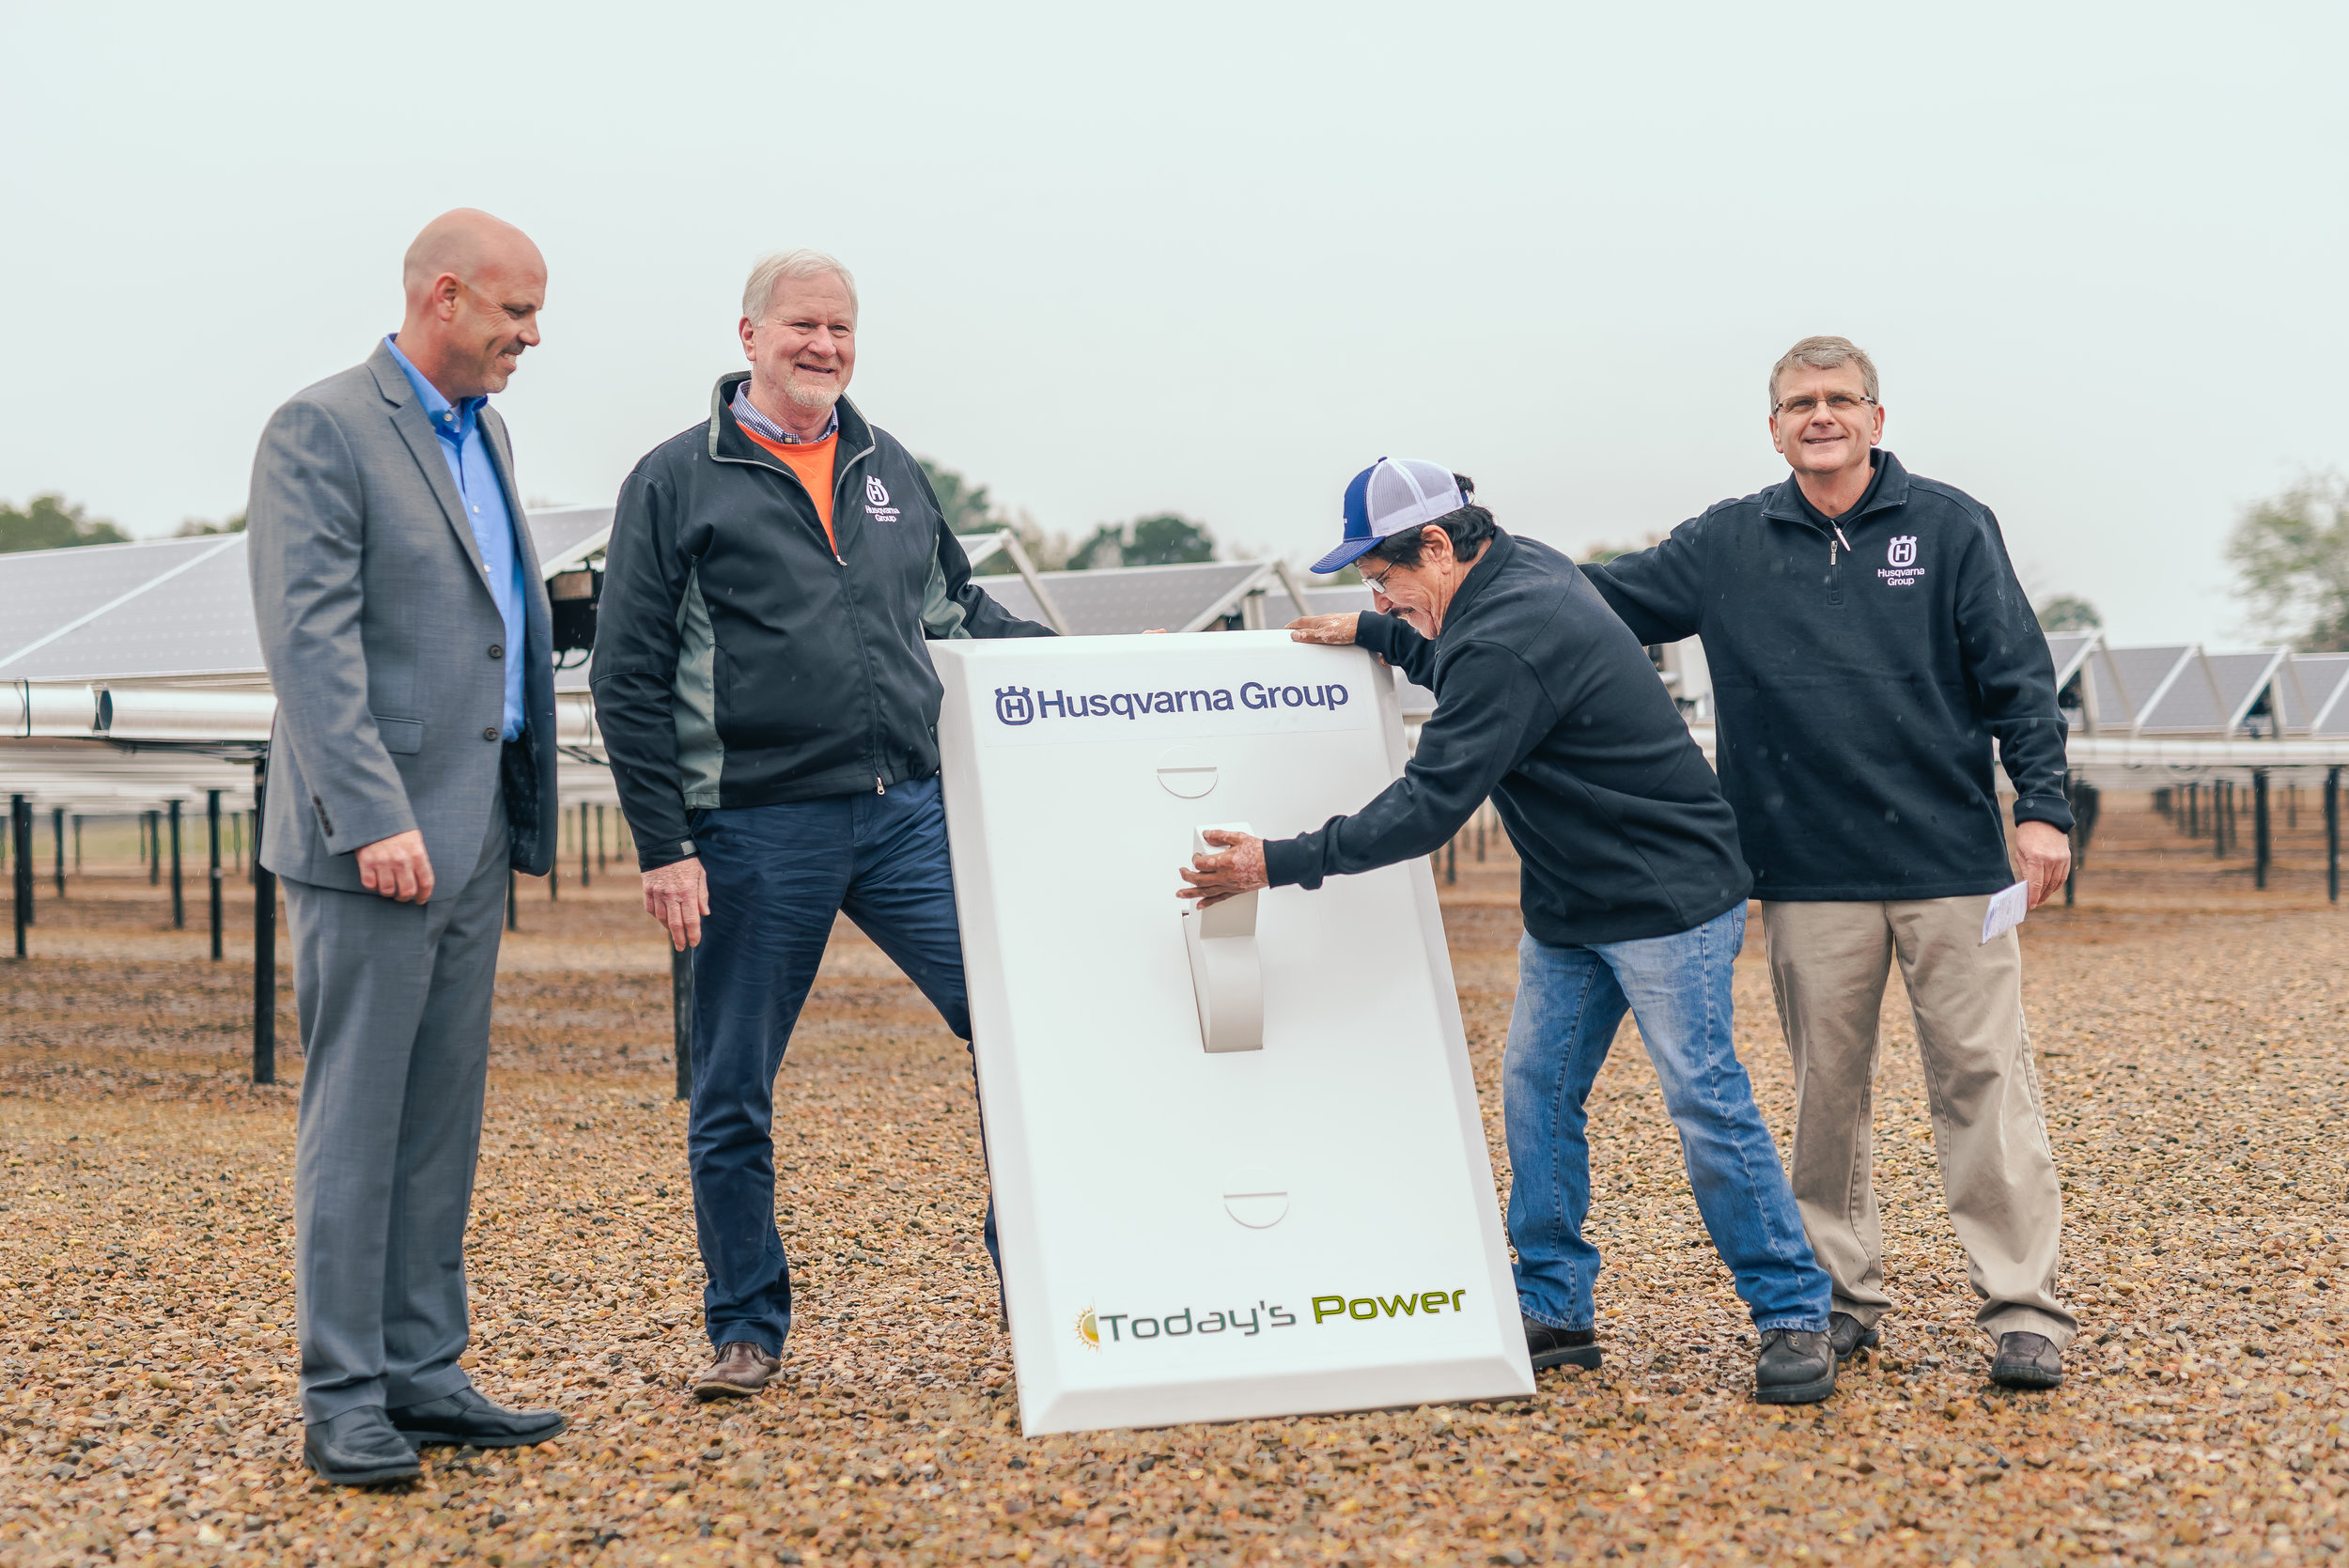 After more than 40 years of employment at Husqvarna's Nashville-based plant, their most tenured employee flipped the switch on Husqvarna Group's 1 Megawatt Solar Array.